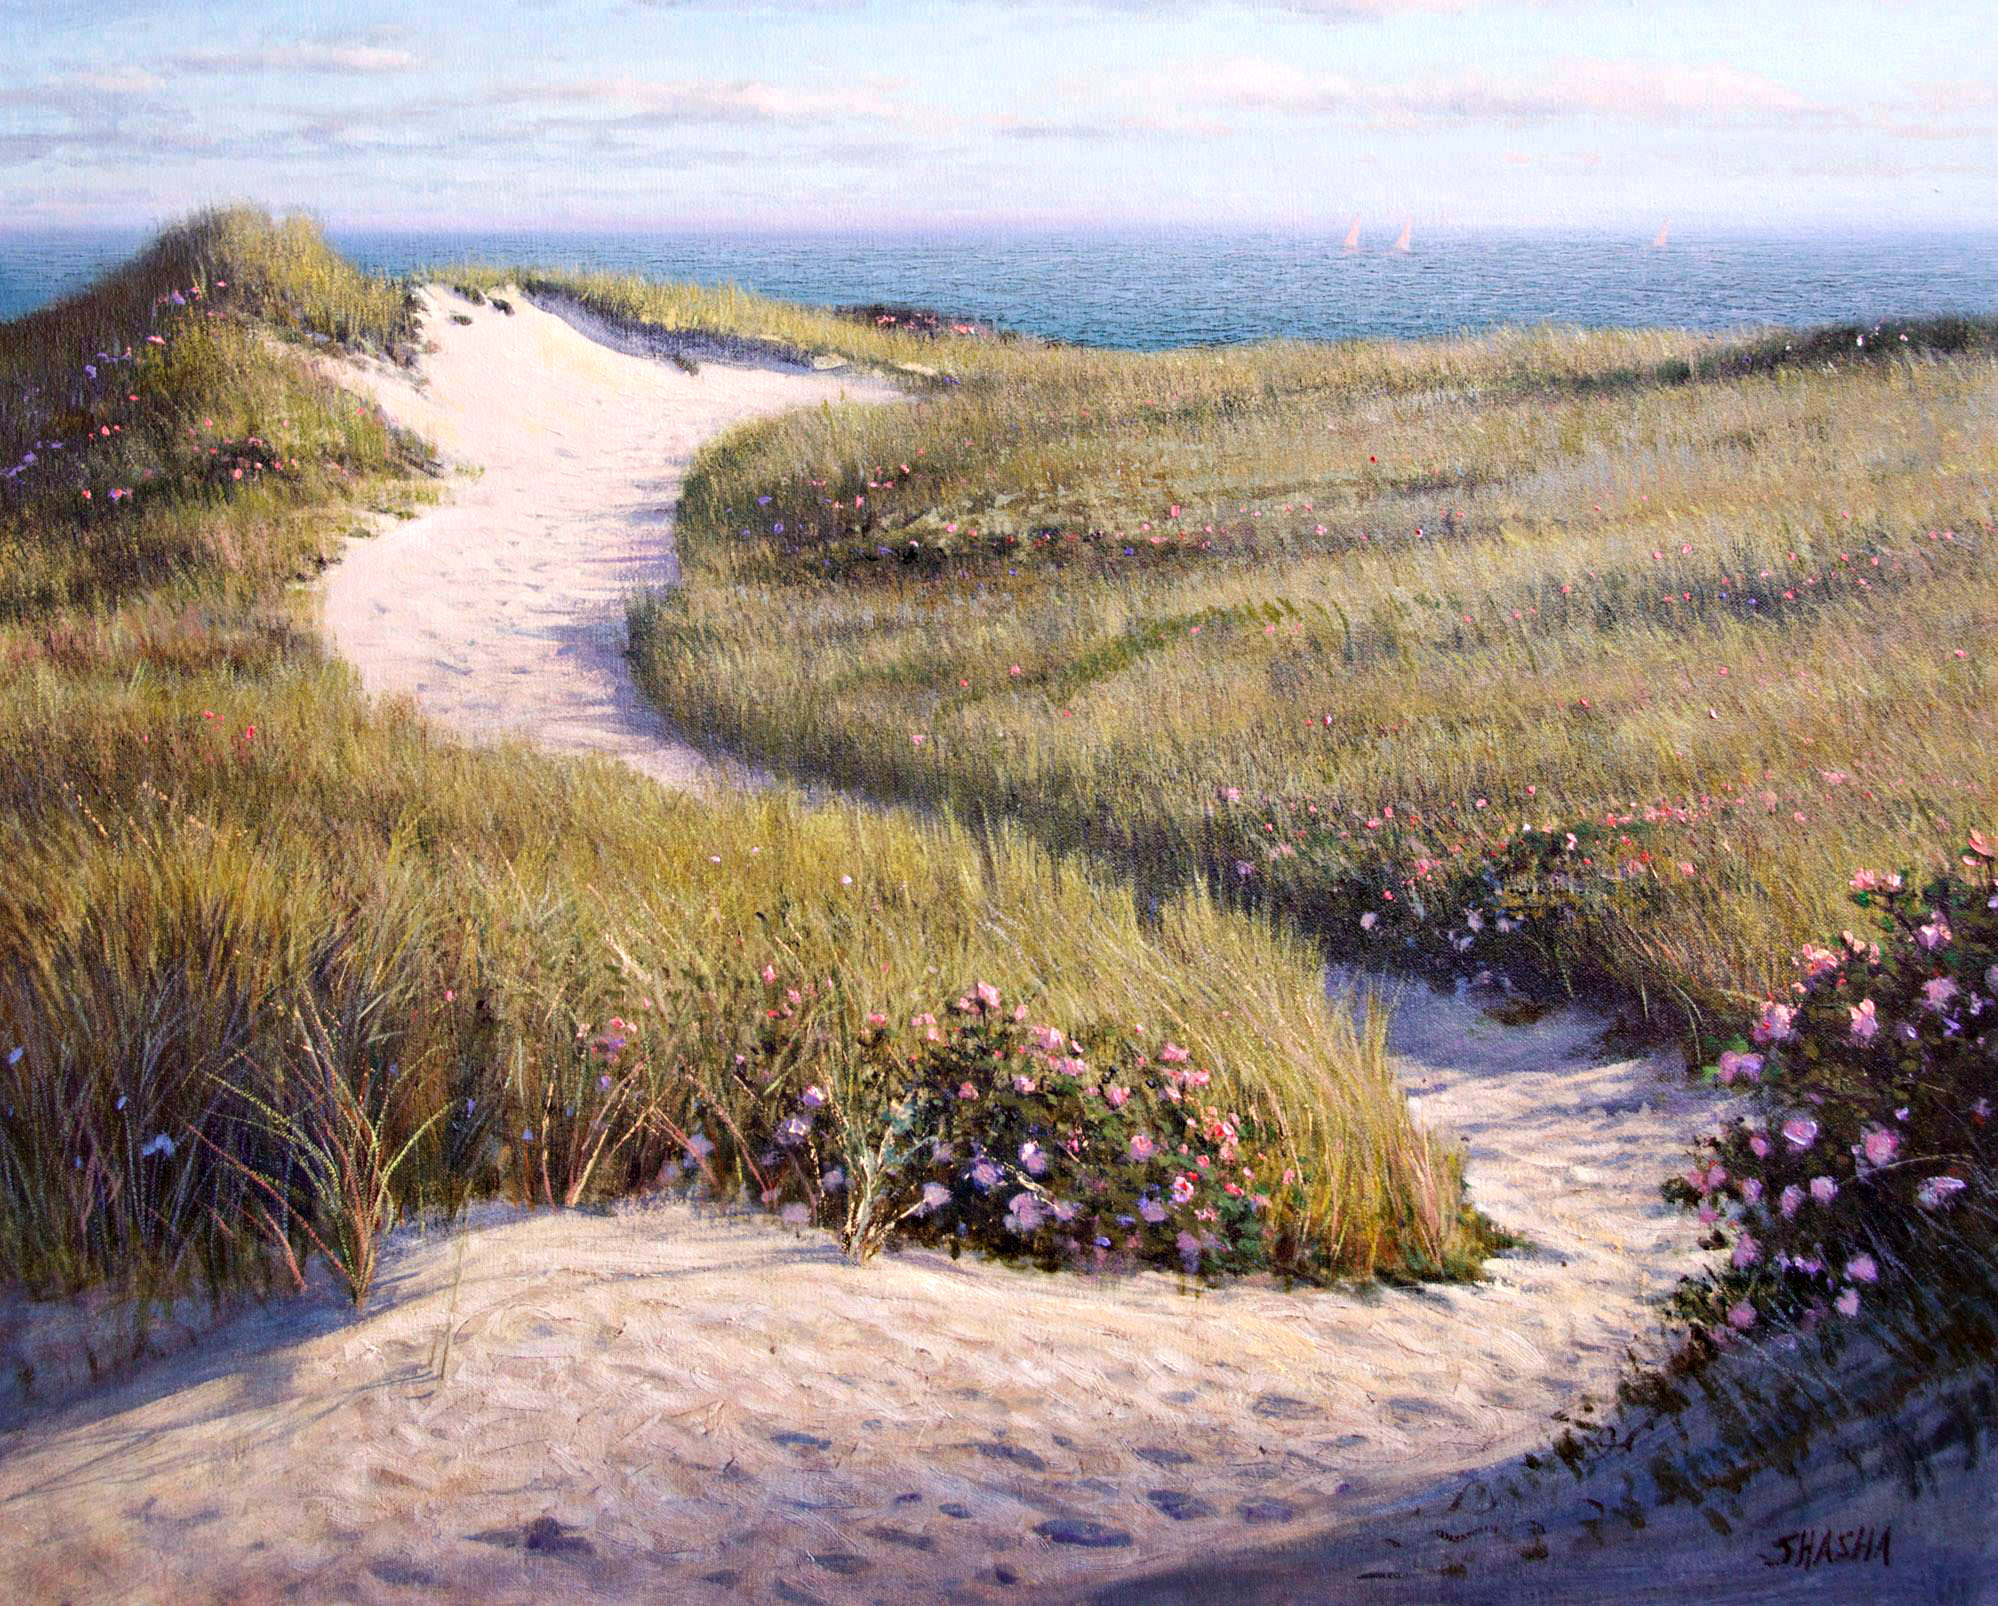 En plein air painting Dune Winder, by Mark Shasha